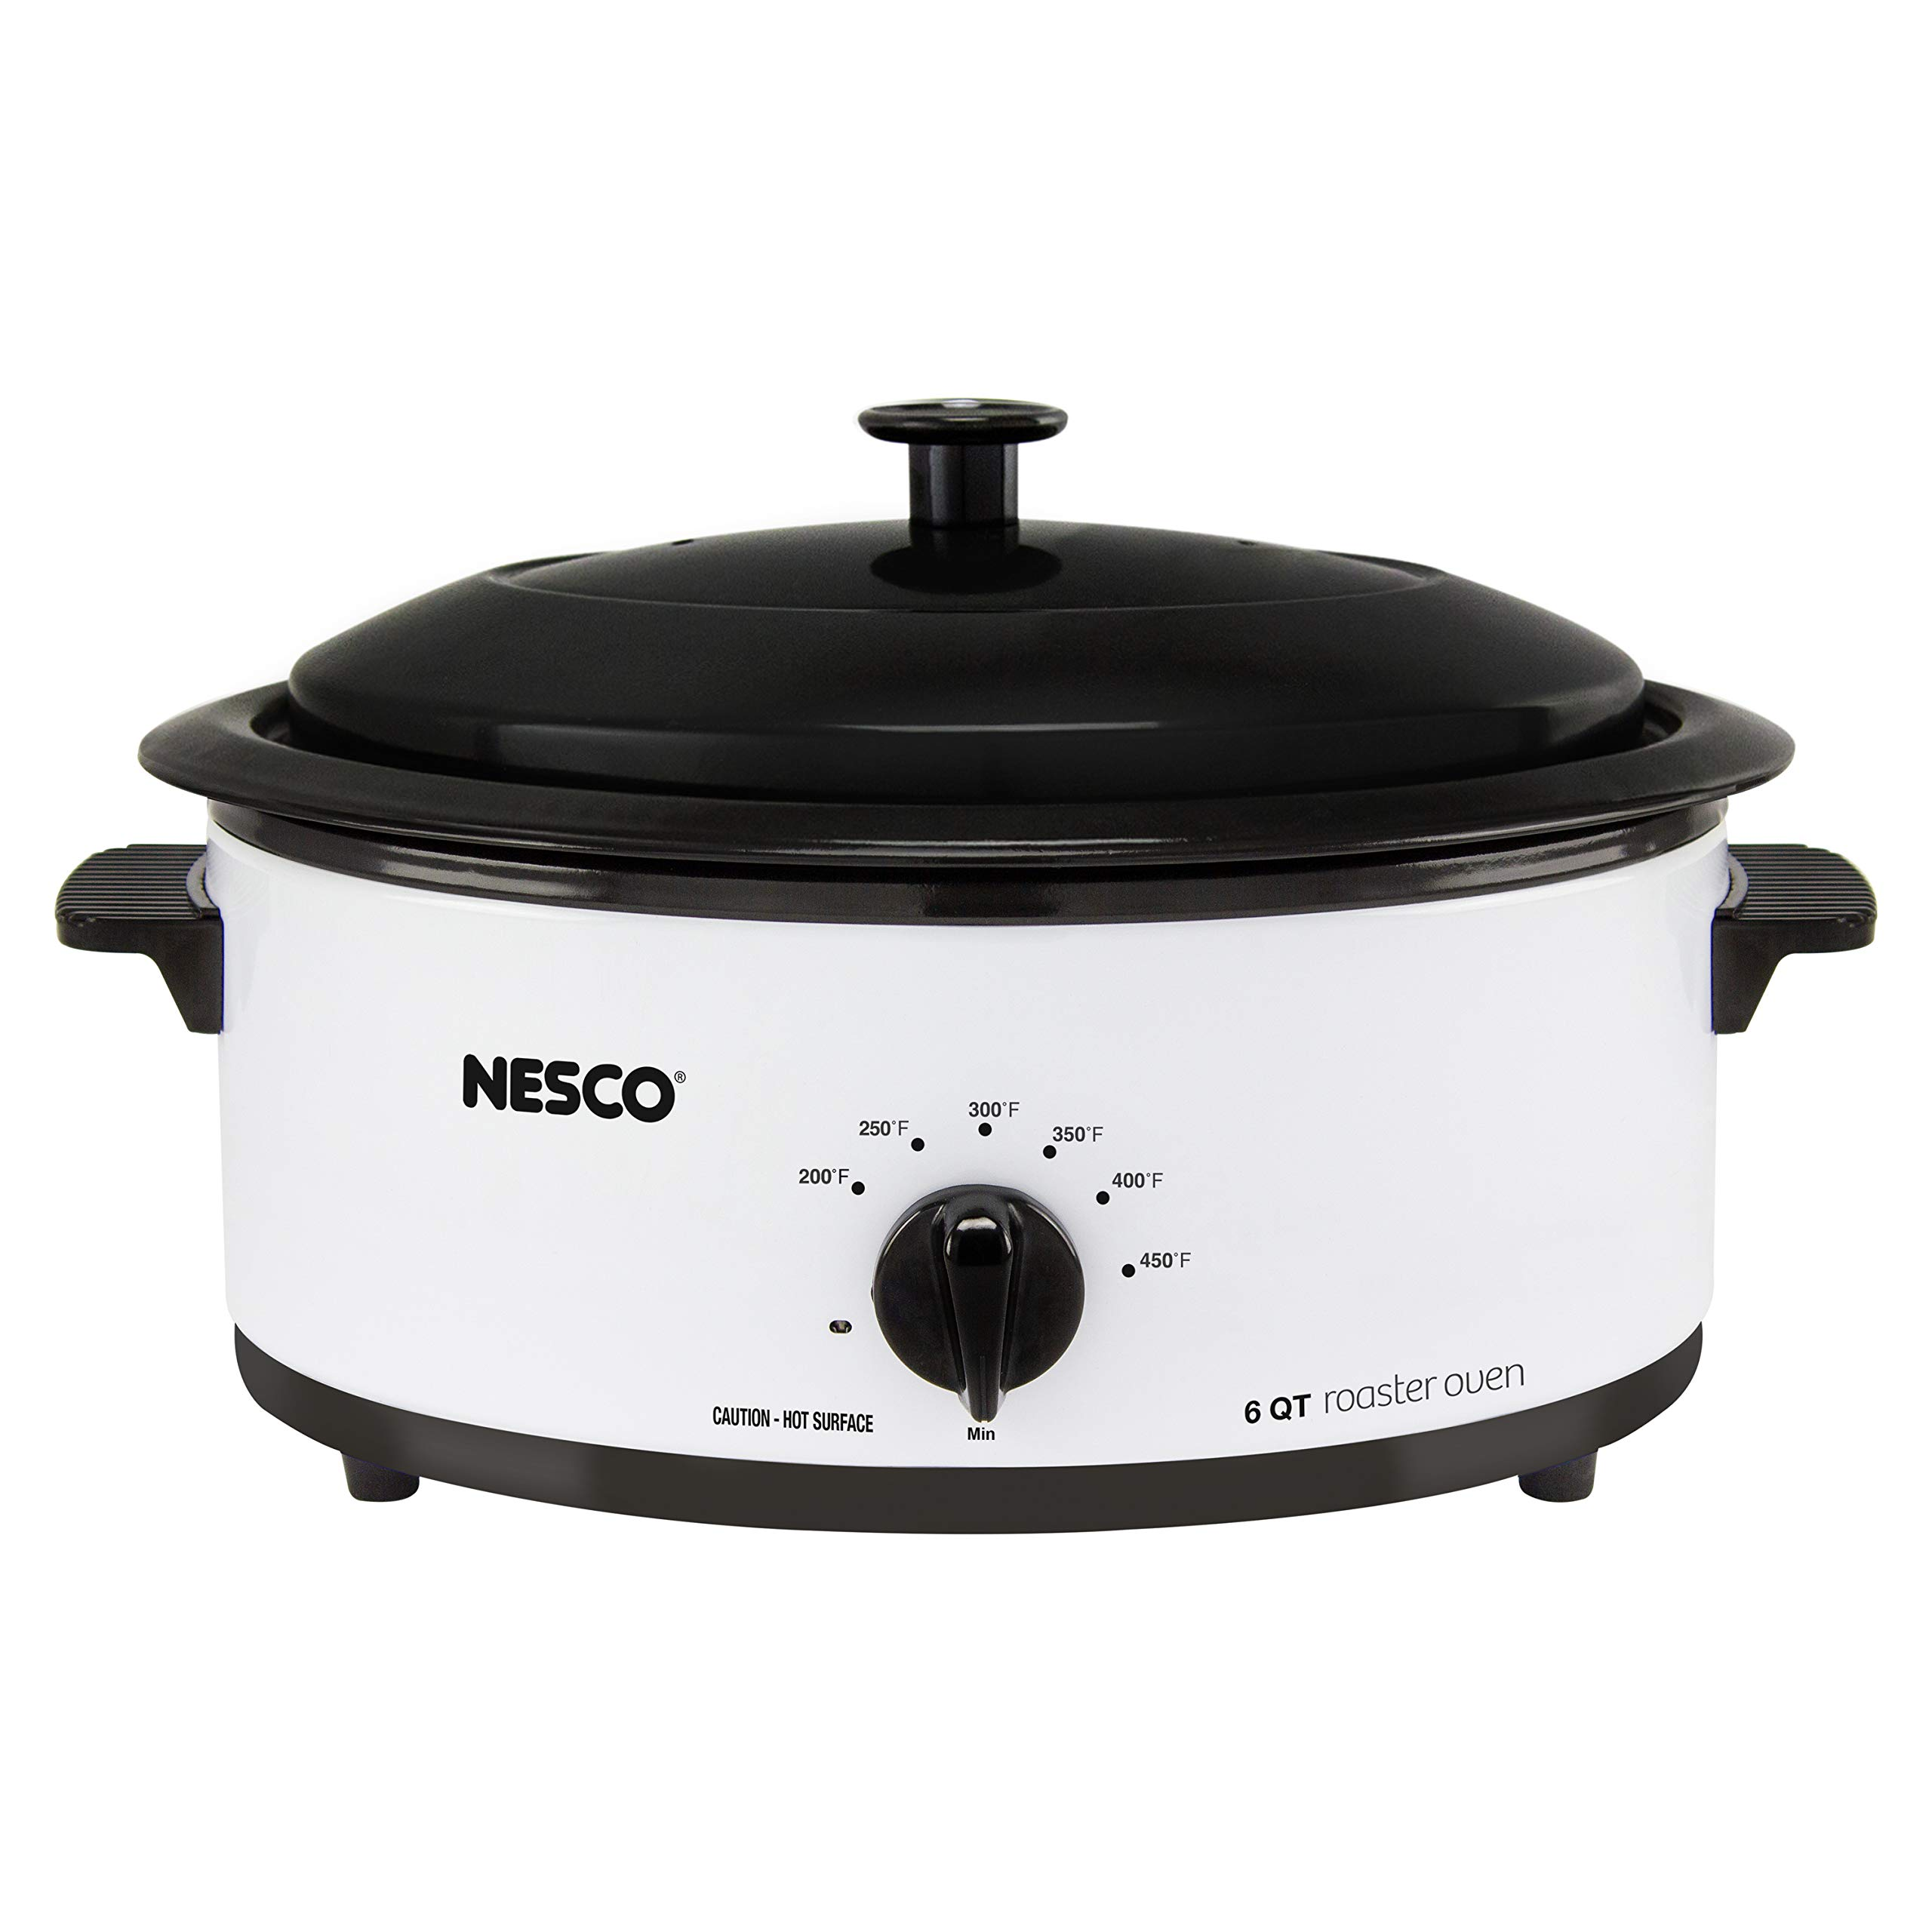 Nesco 4816-14 Porcelain Roaster Oven, 6 quart, White by Nesco